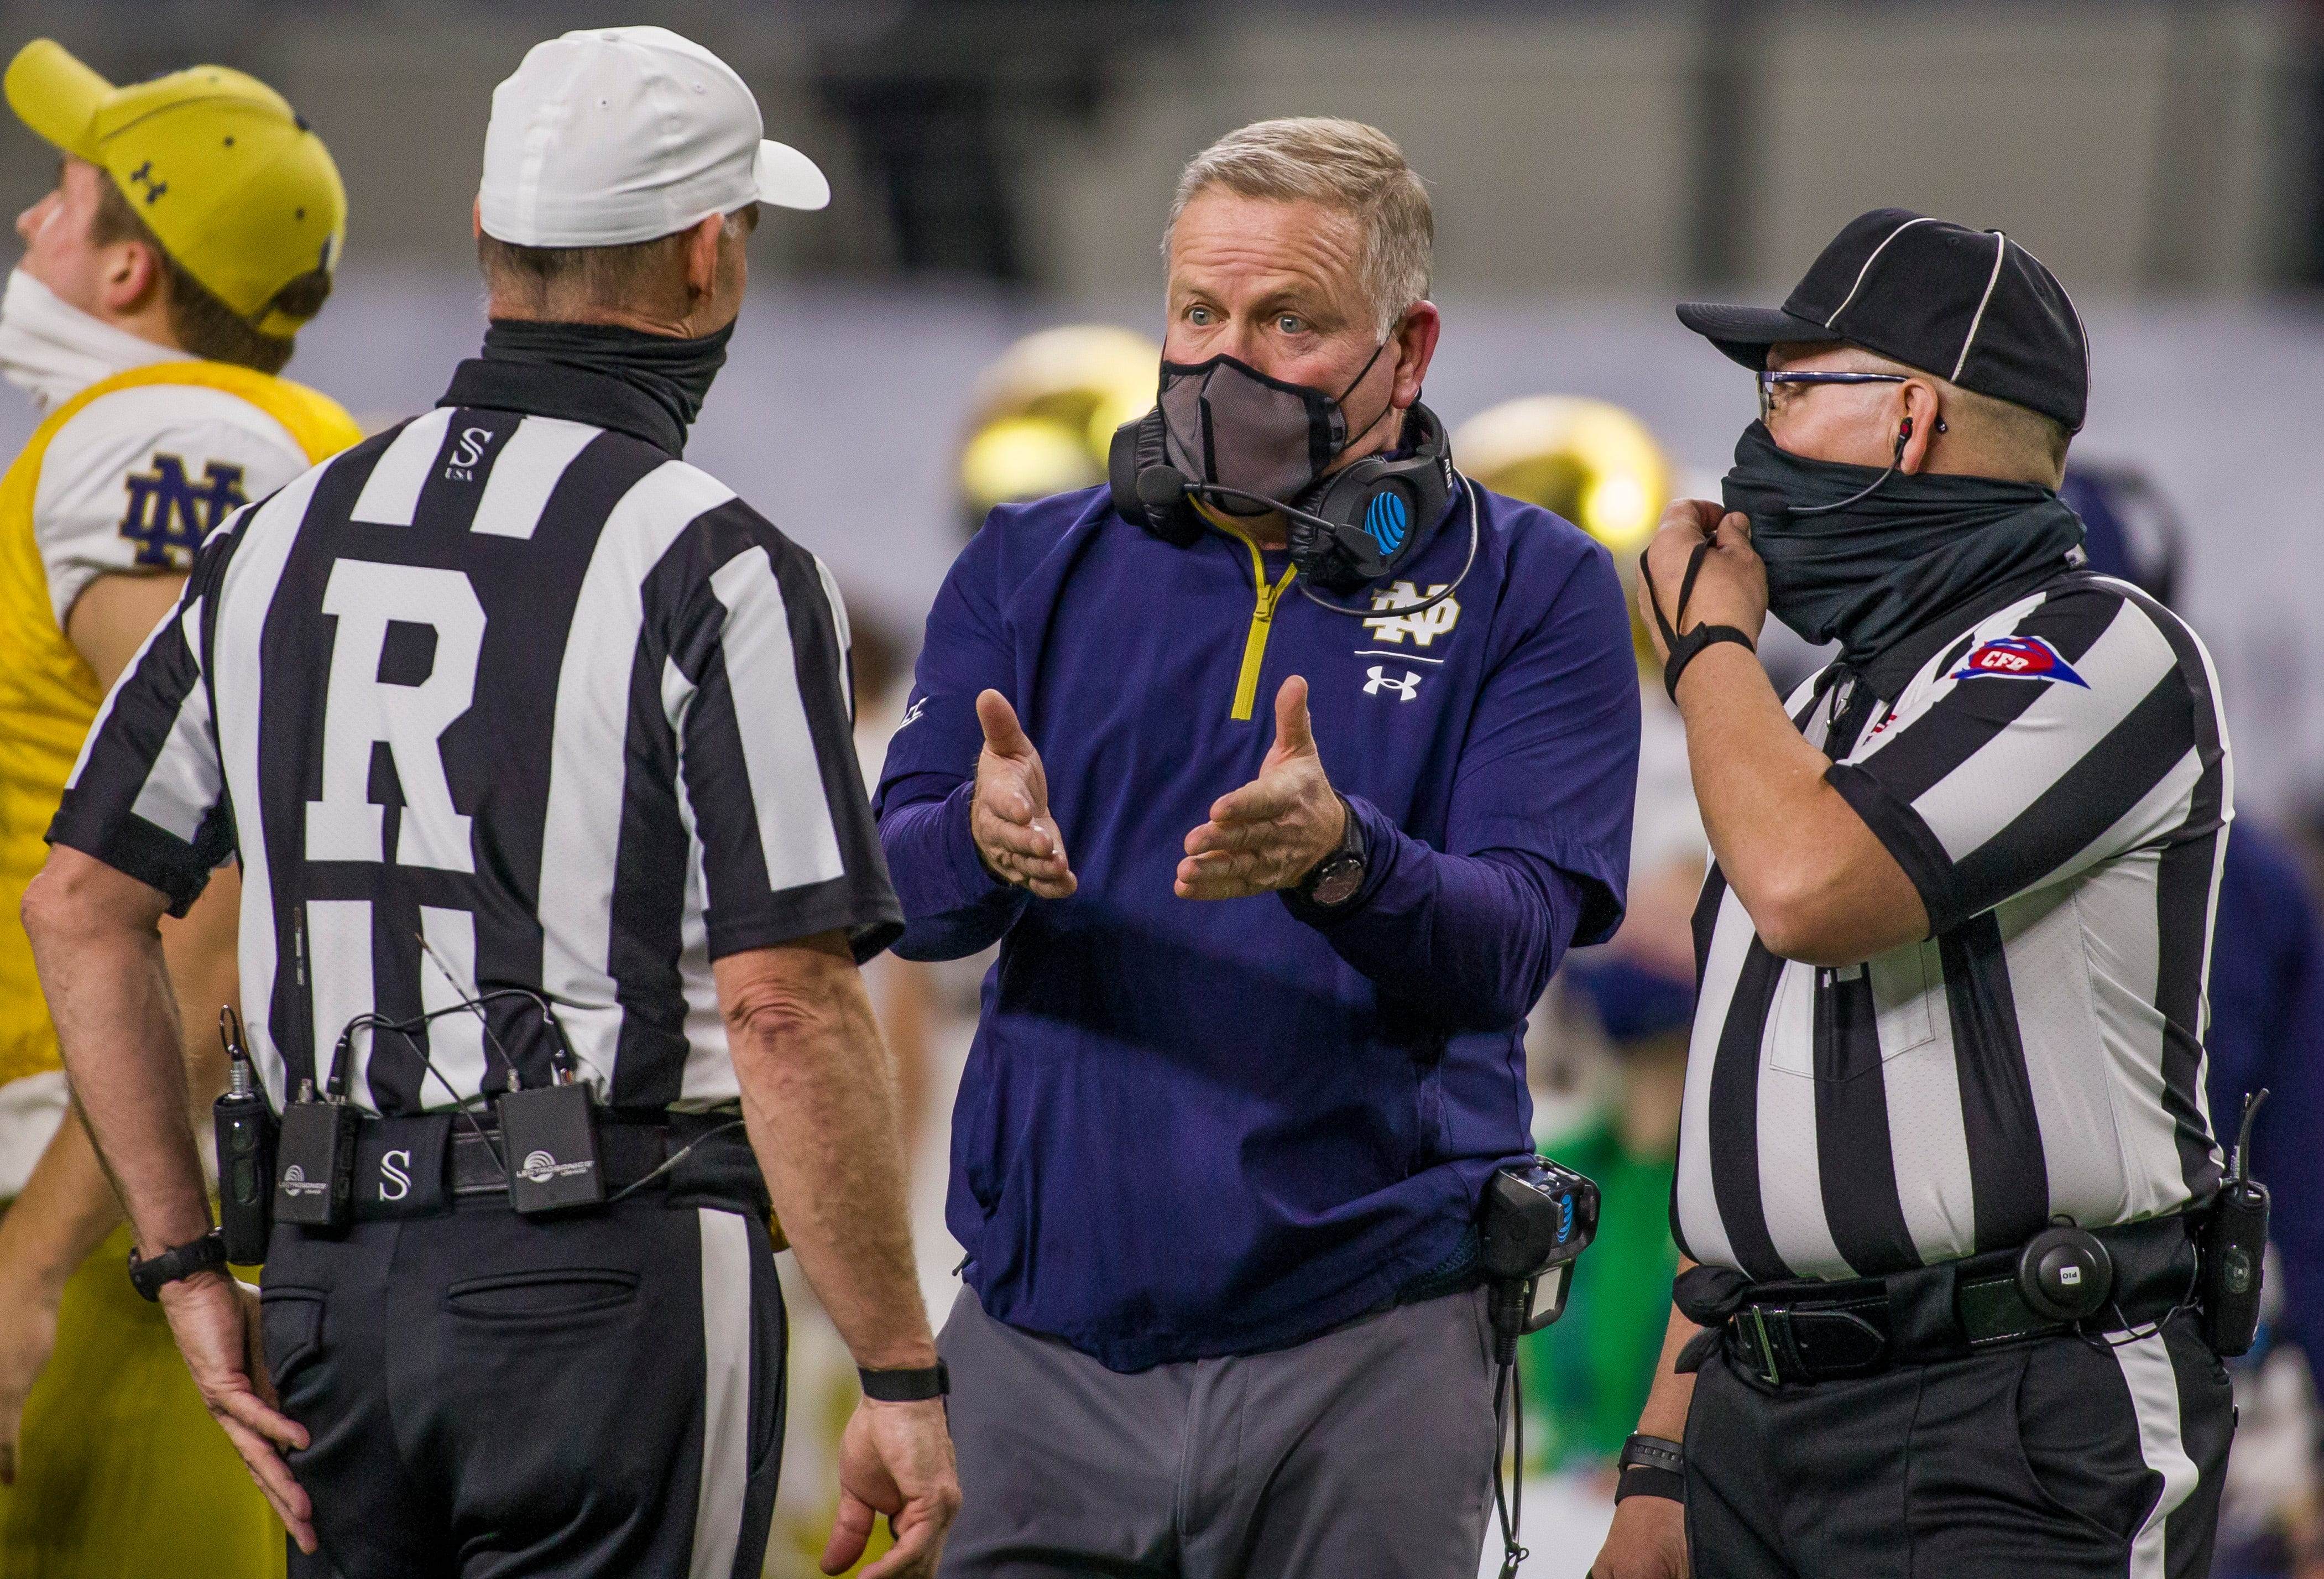 Notre Dame football on probation for two recruiting violations, report says